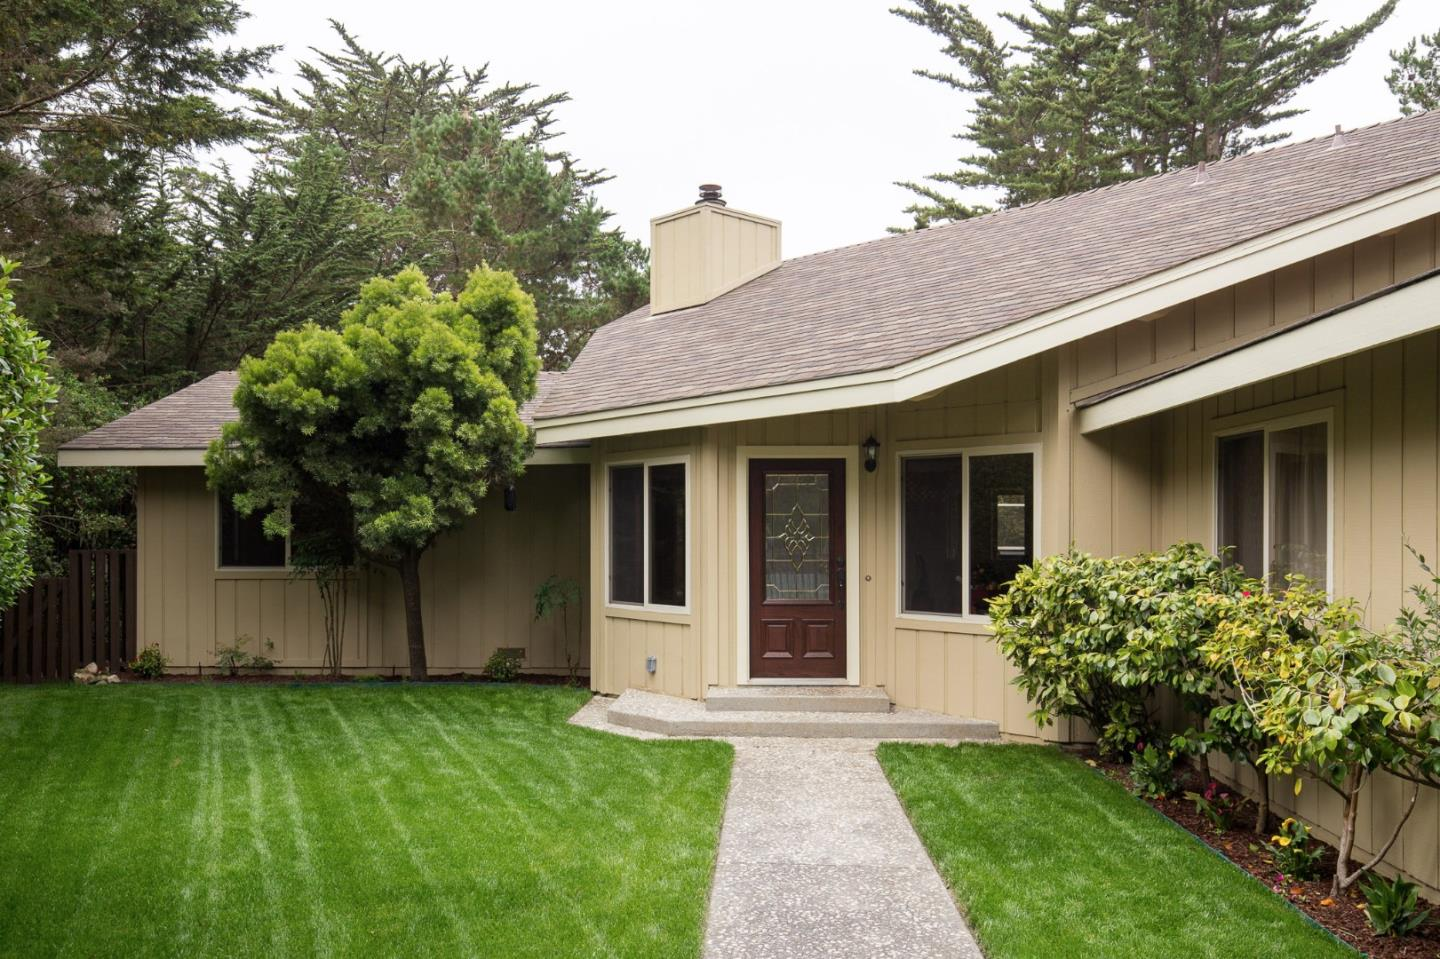 Single Family Home for Sale at 1208 Lake Court Pebble Beach, California 93953 United States